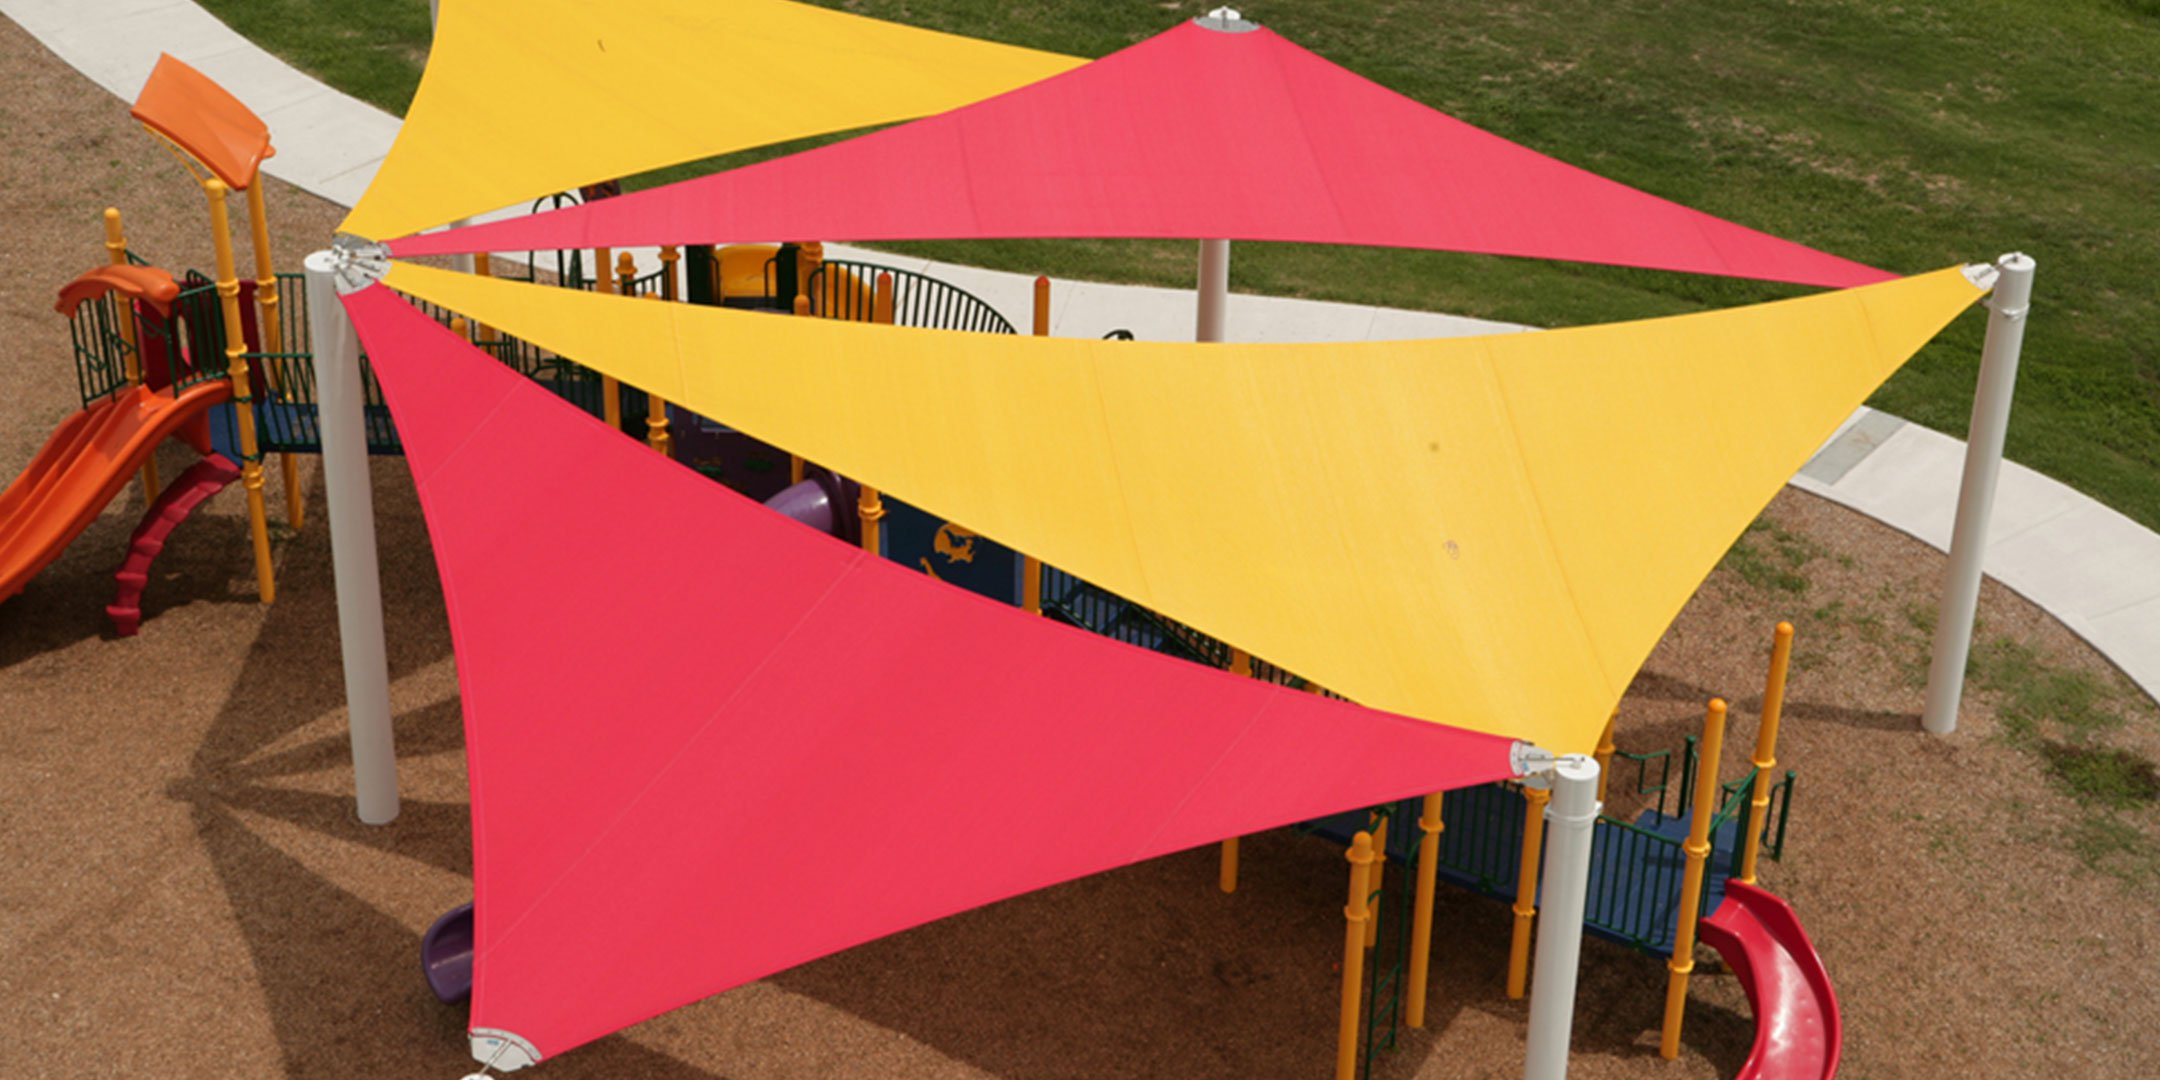 Made for Shade Awards Over $20K to Community of Shade Structures